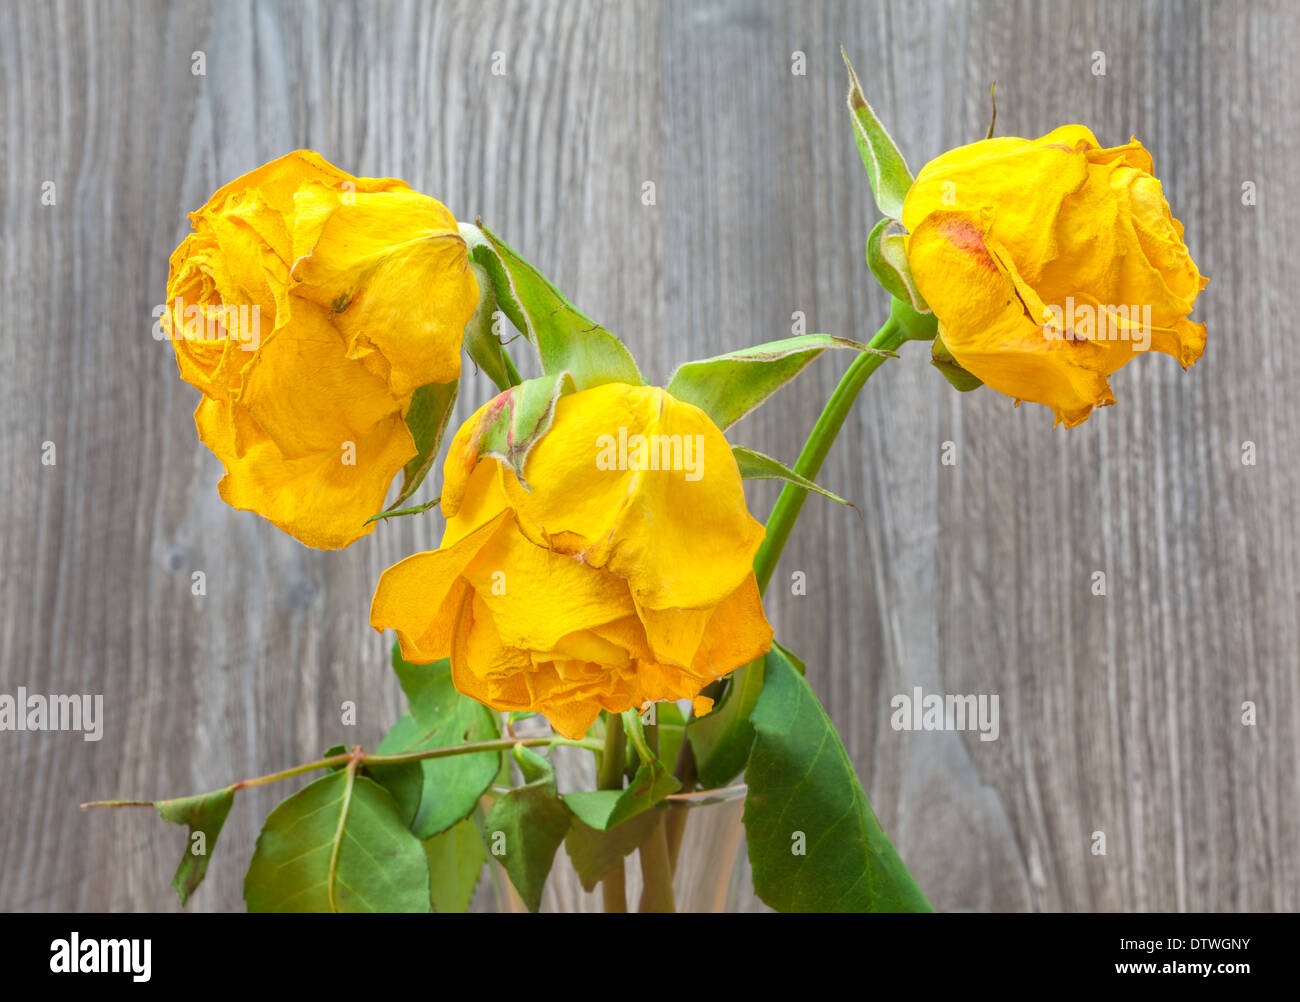 Three withered yellow roses close up - Stock Image